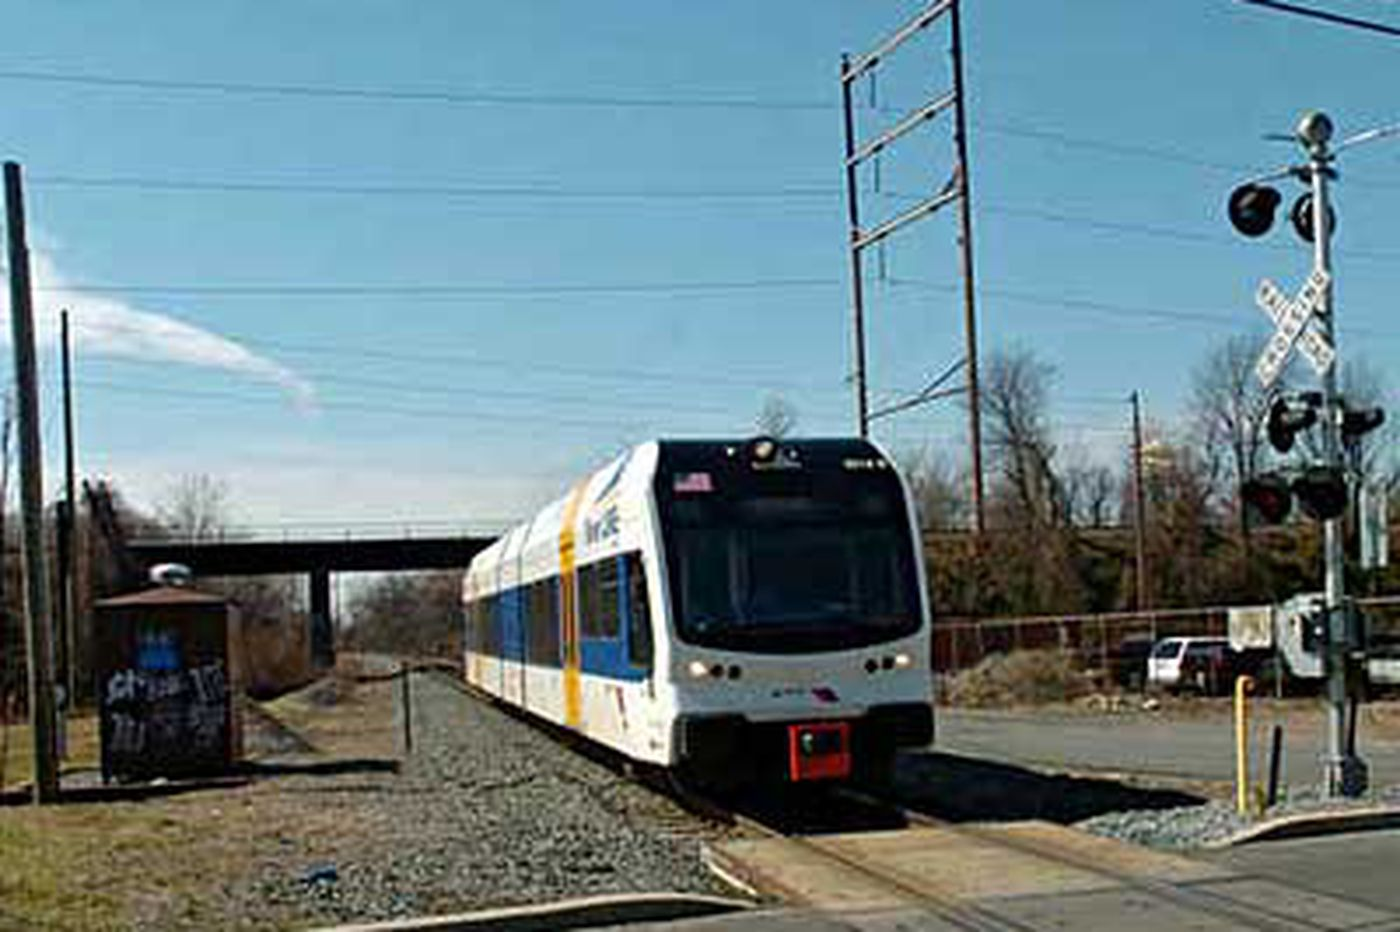 River Line plans to expand